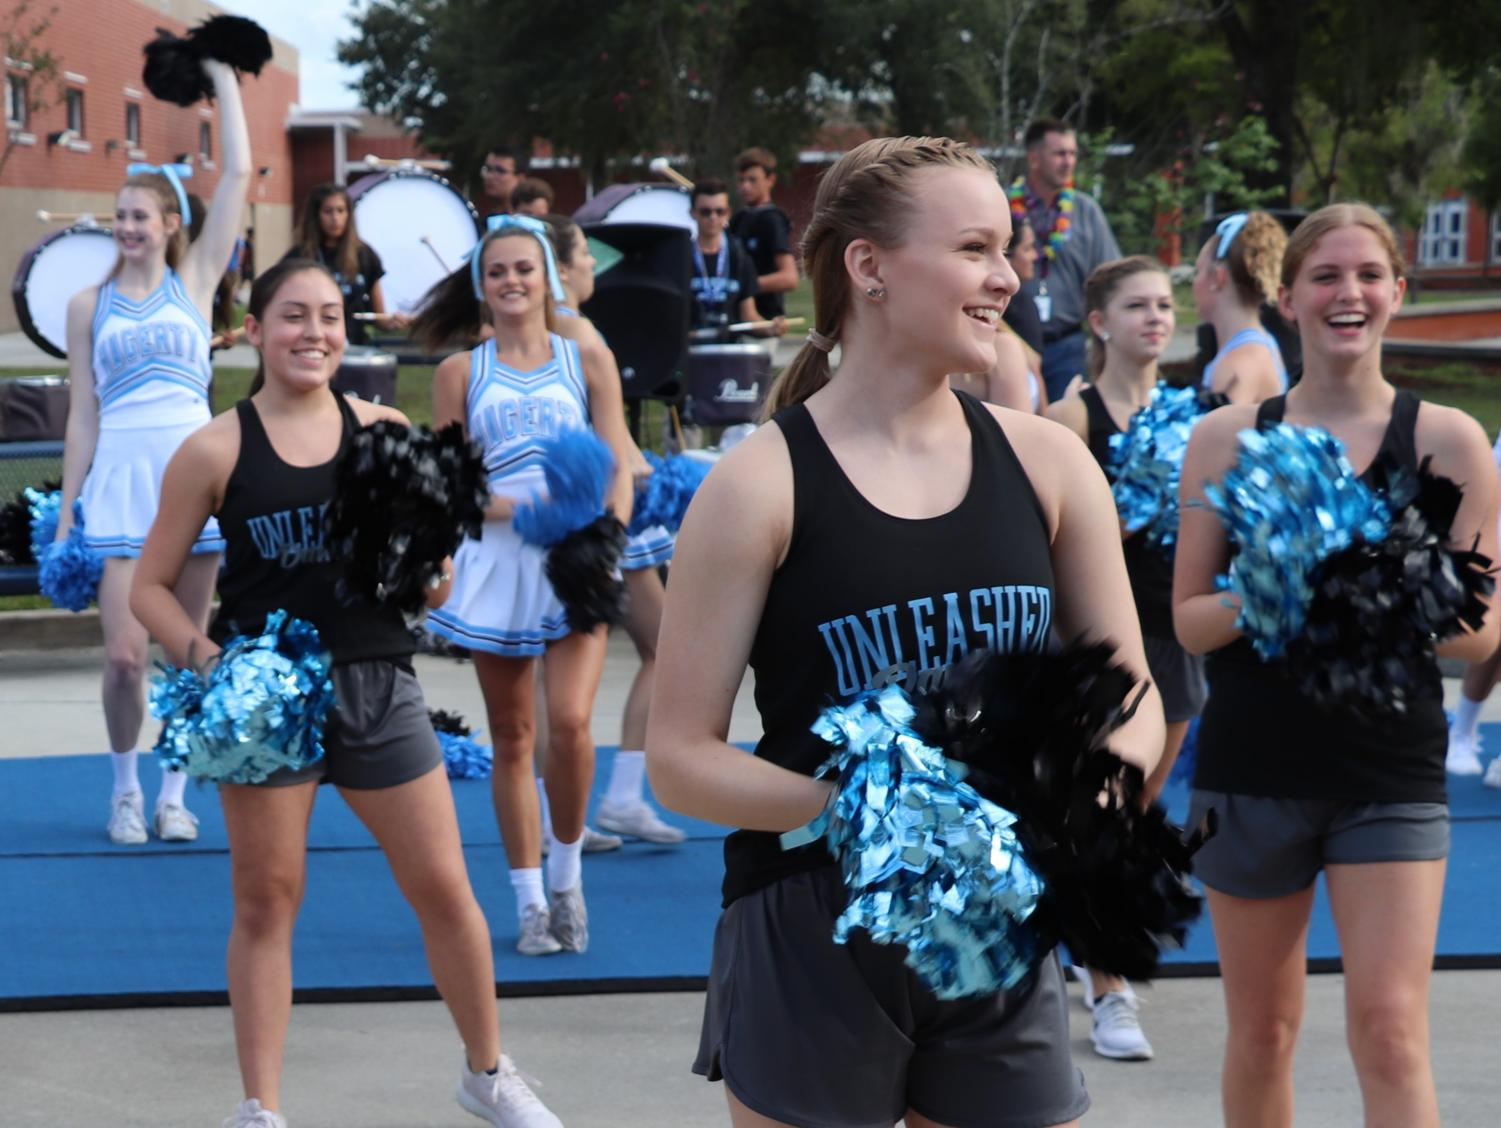 Cheerleaders and dance team members perform during the Husky Huddle on Aug. 30. Principal Robert Frasca has planned to make spirit events like this more of a regular thing.